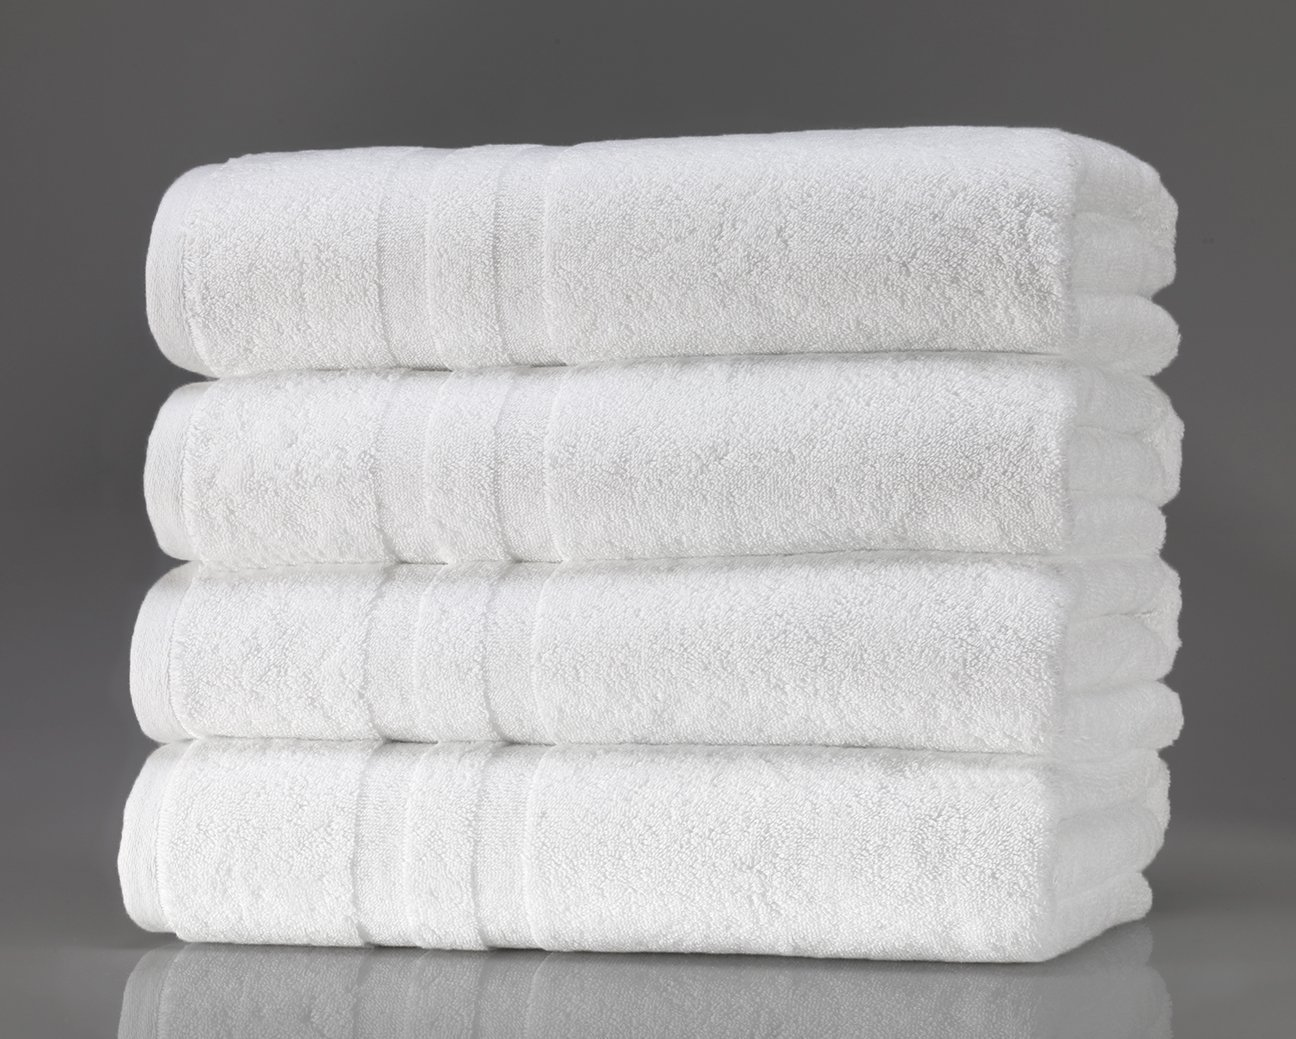 Bath Towels- White, Ultra- Soft and Absorbent Towels, Luxury Spa, Salon, and Hotel Towels. More- Fibrous Threads and Moisture- Sucking Loops, 100% cotton. 27″x54″, Set of 4 review